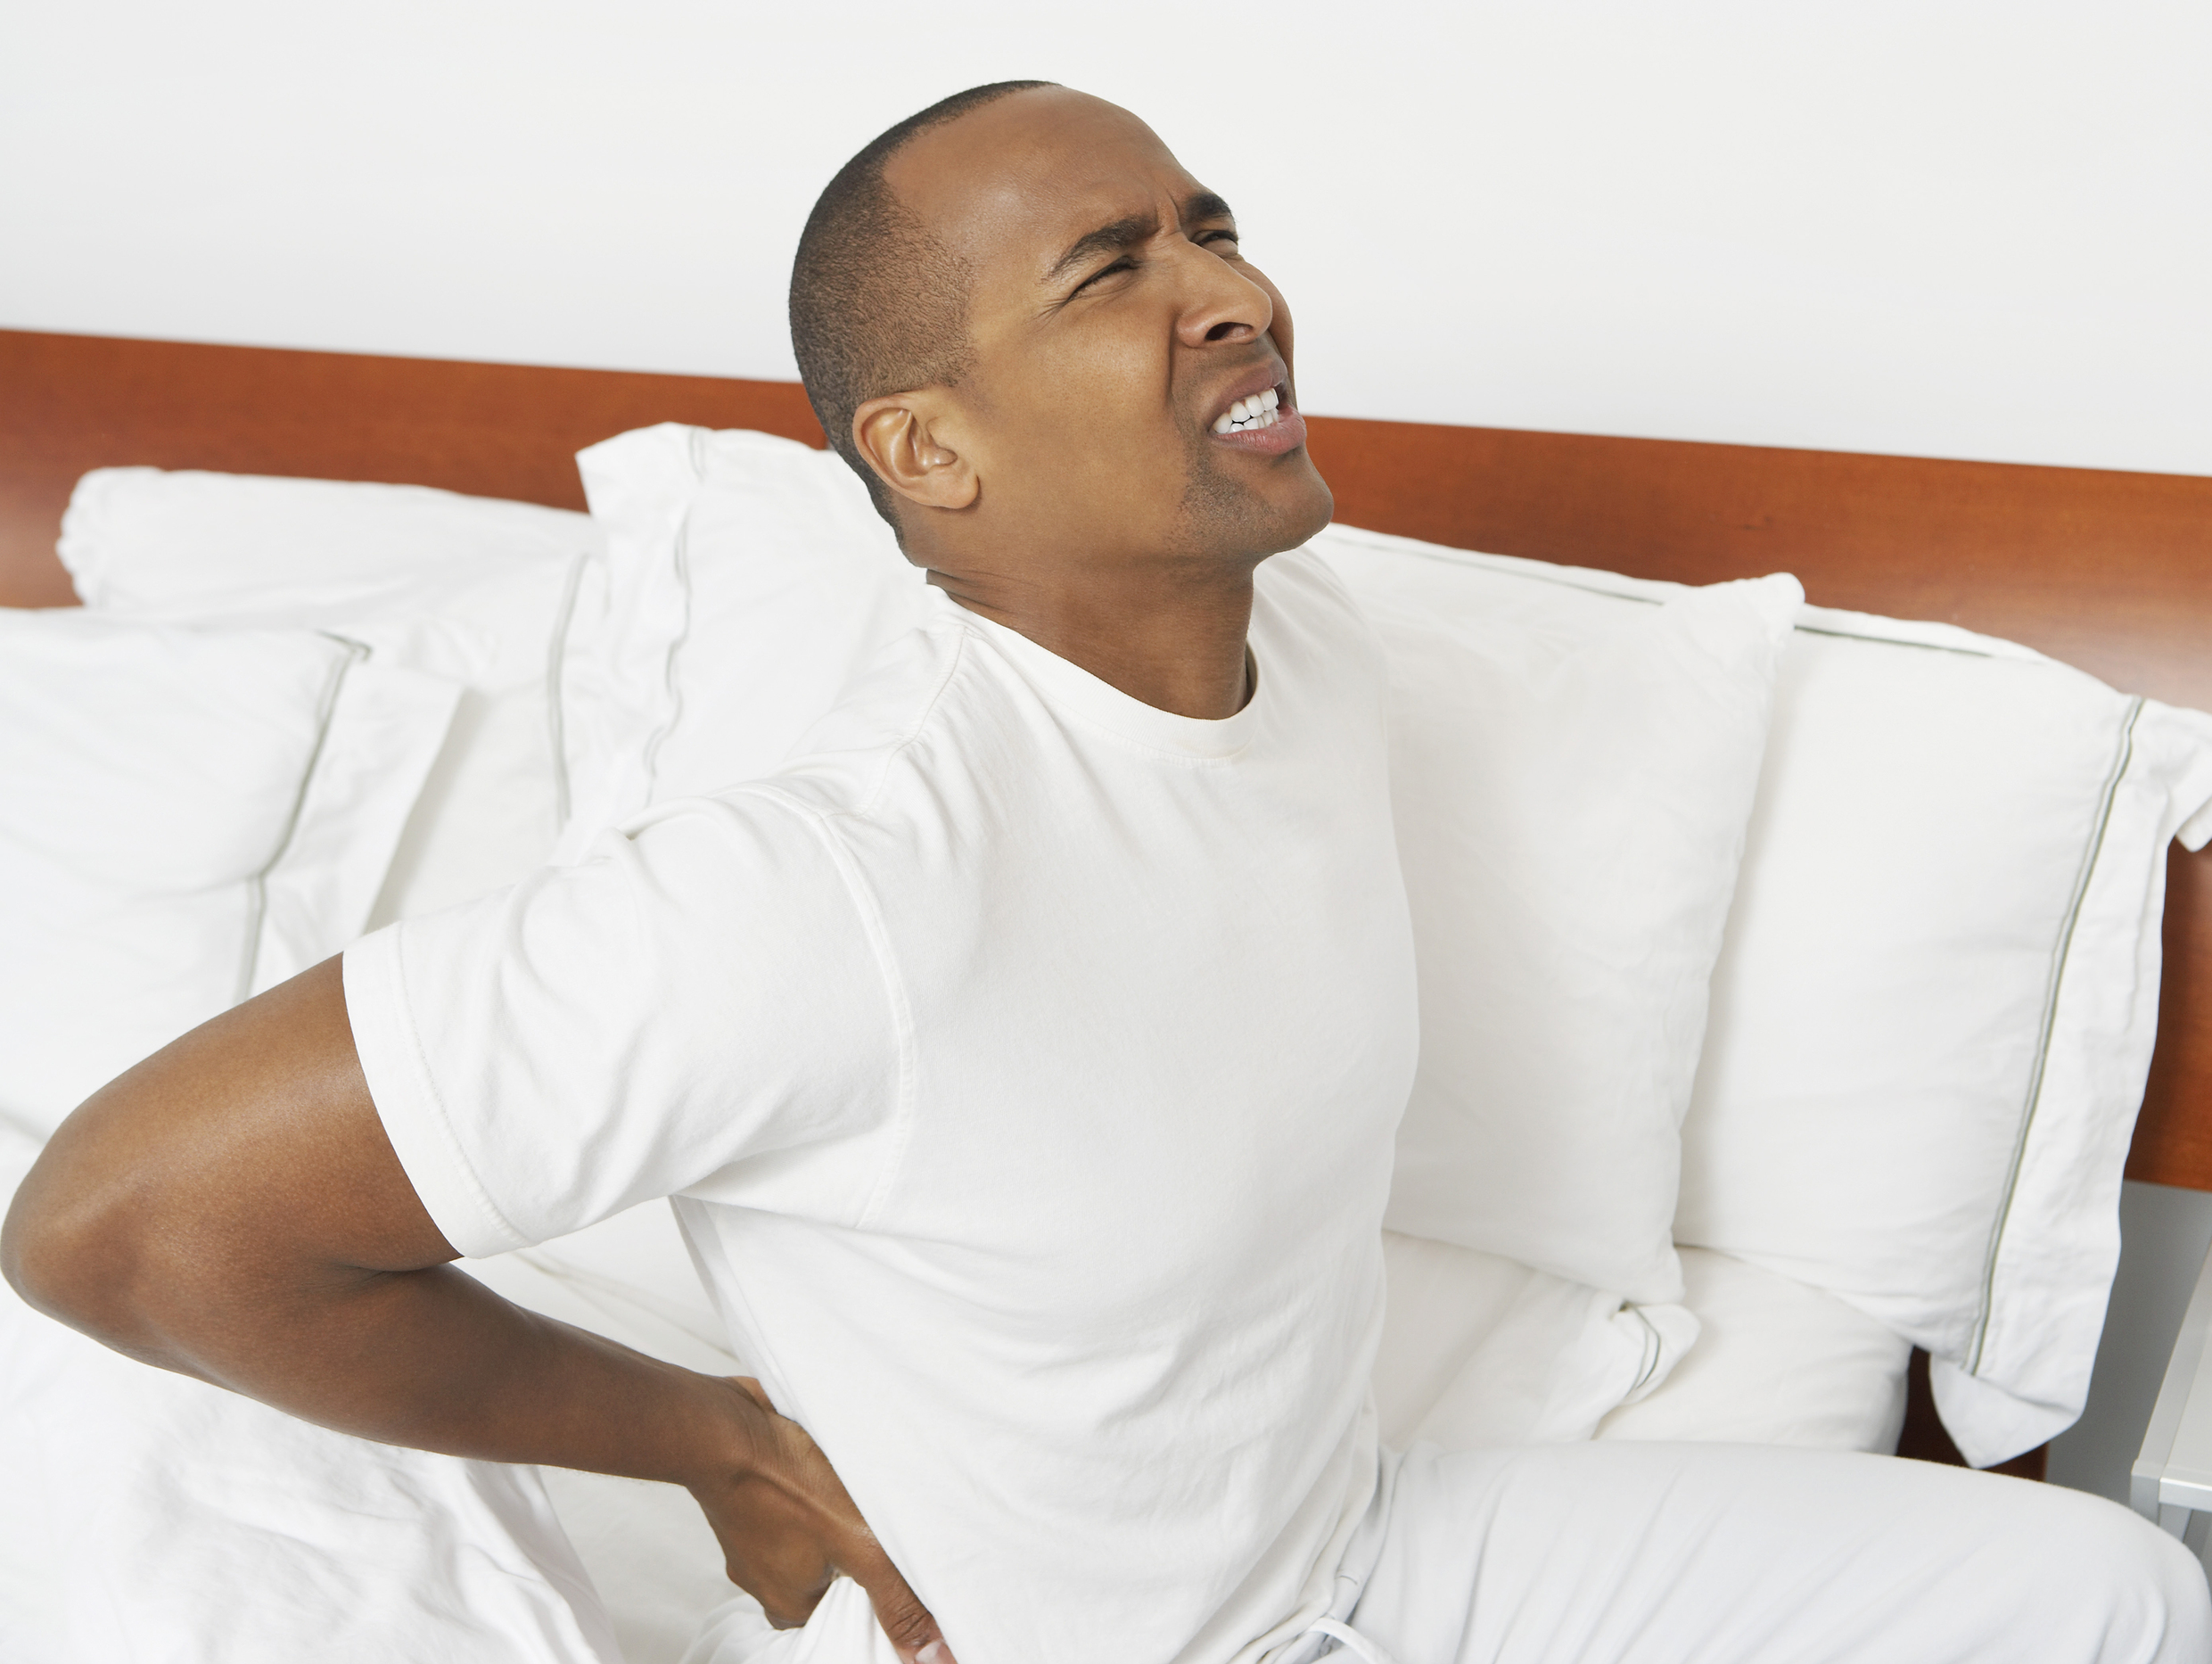 back-pain-bed-man-with-severe-back-pain-bed-41602582